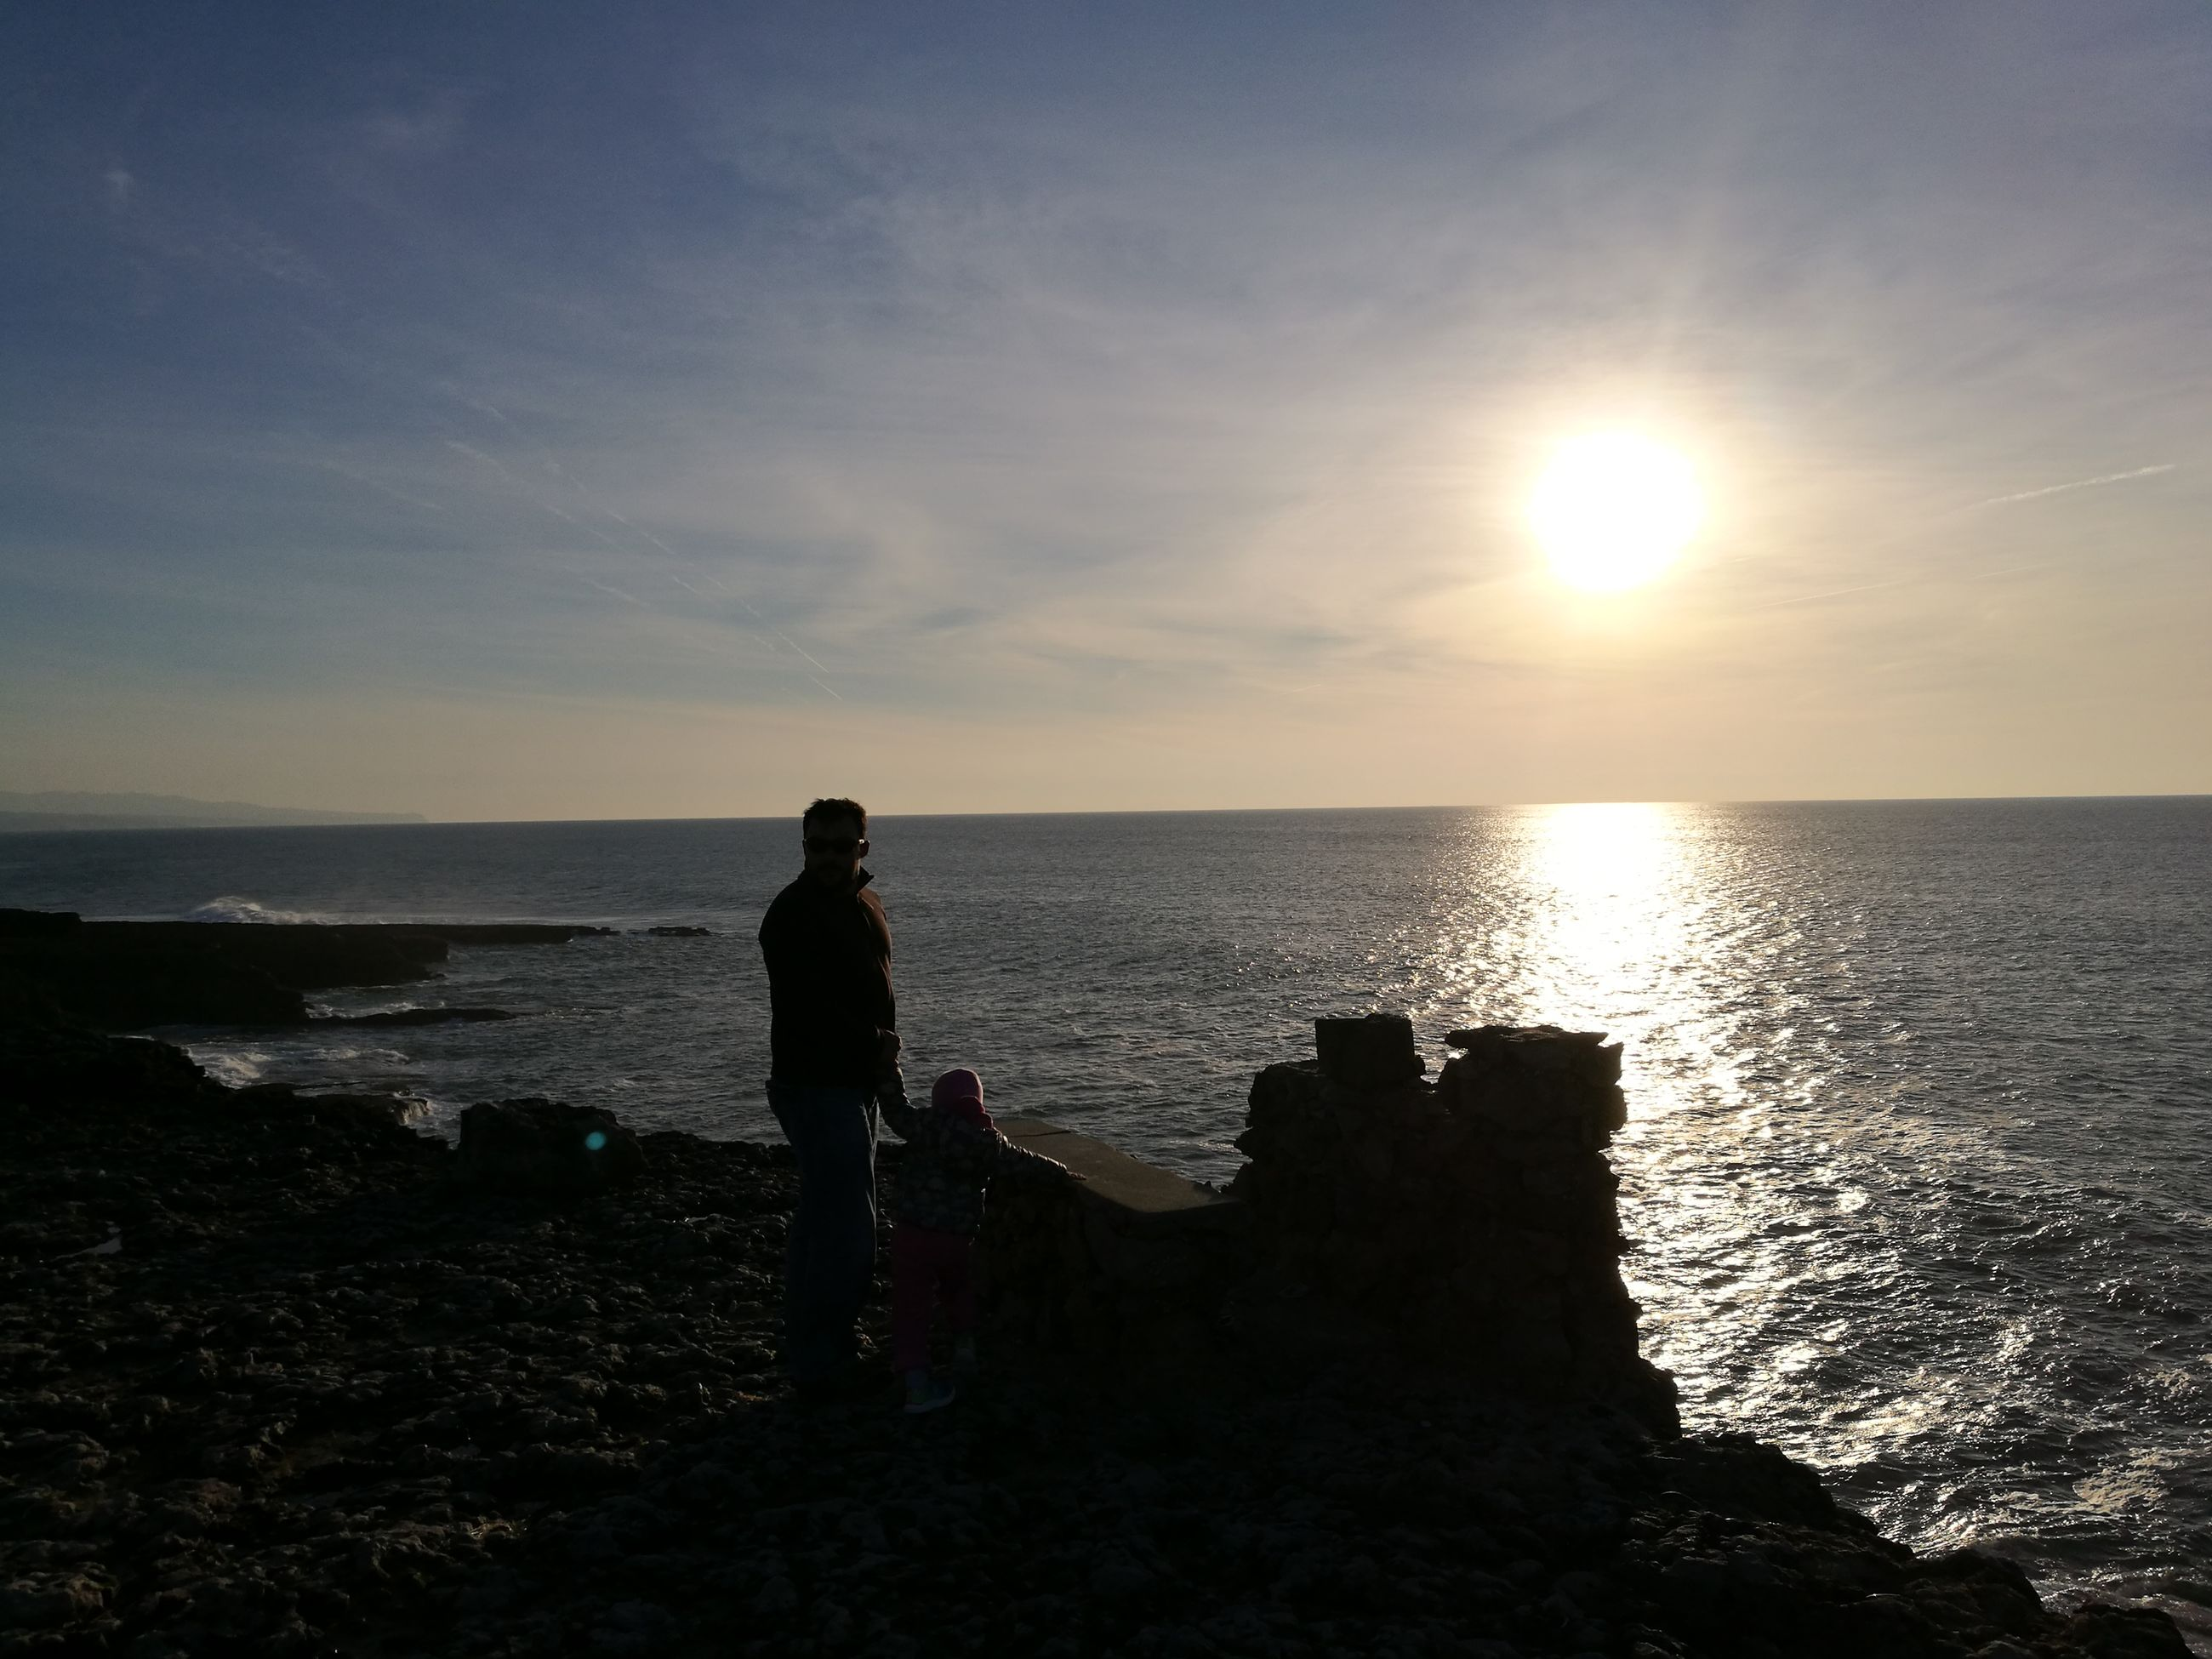 sea, horizon over water, silhouette, one person, sky, sunset, standing, water, tranquility, rear view, beach, full length, beauty in nature, one man only, only men, people, outdoors, scenics, adults only, adult, nature, day